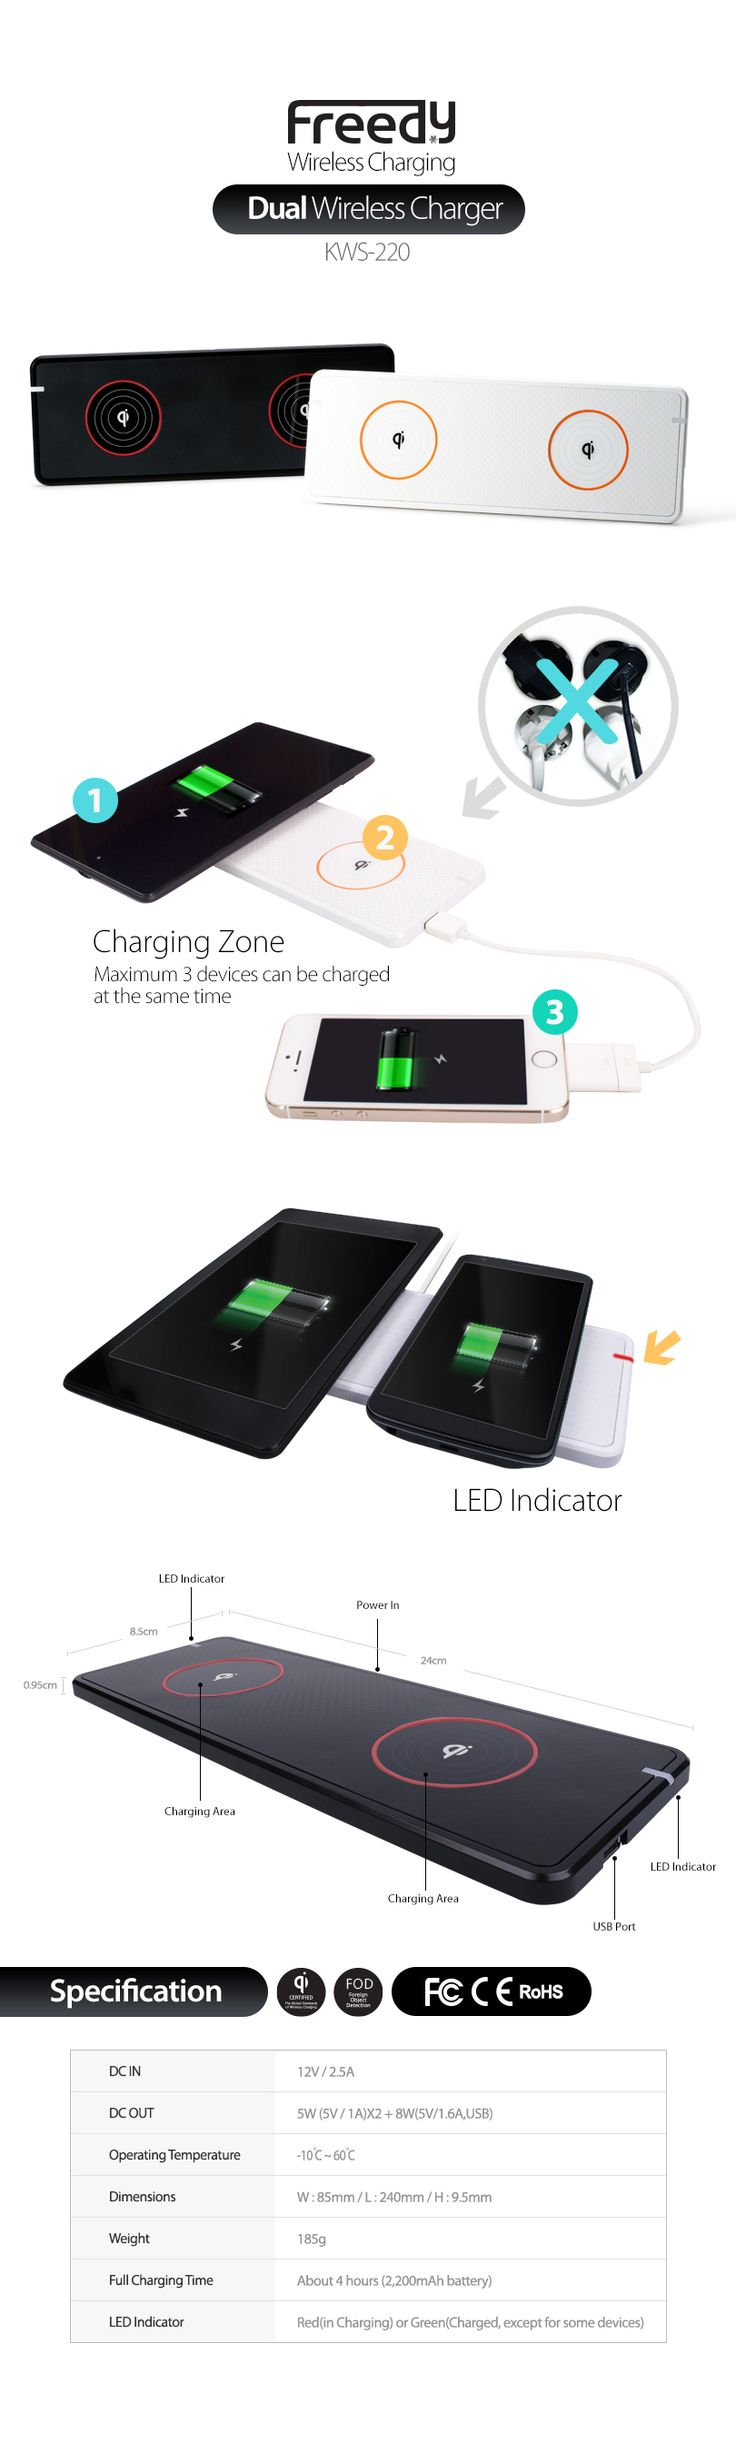 FREEDY Dual Wireless Charger KWS-220 for Qi Enabled Smartphones and Tablets- Retail Packaging - White: Cell Phones & Accessories #Qi #Qiwireless #Qiwirelesscharger #freedy #freedywireless #wireless #wirelesscharging #wirelesscharger #madeinkorea #korea #SMAPP #designforsamsung